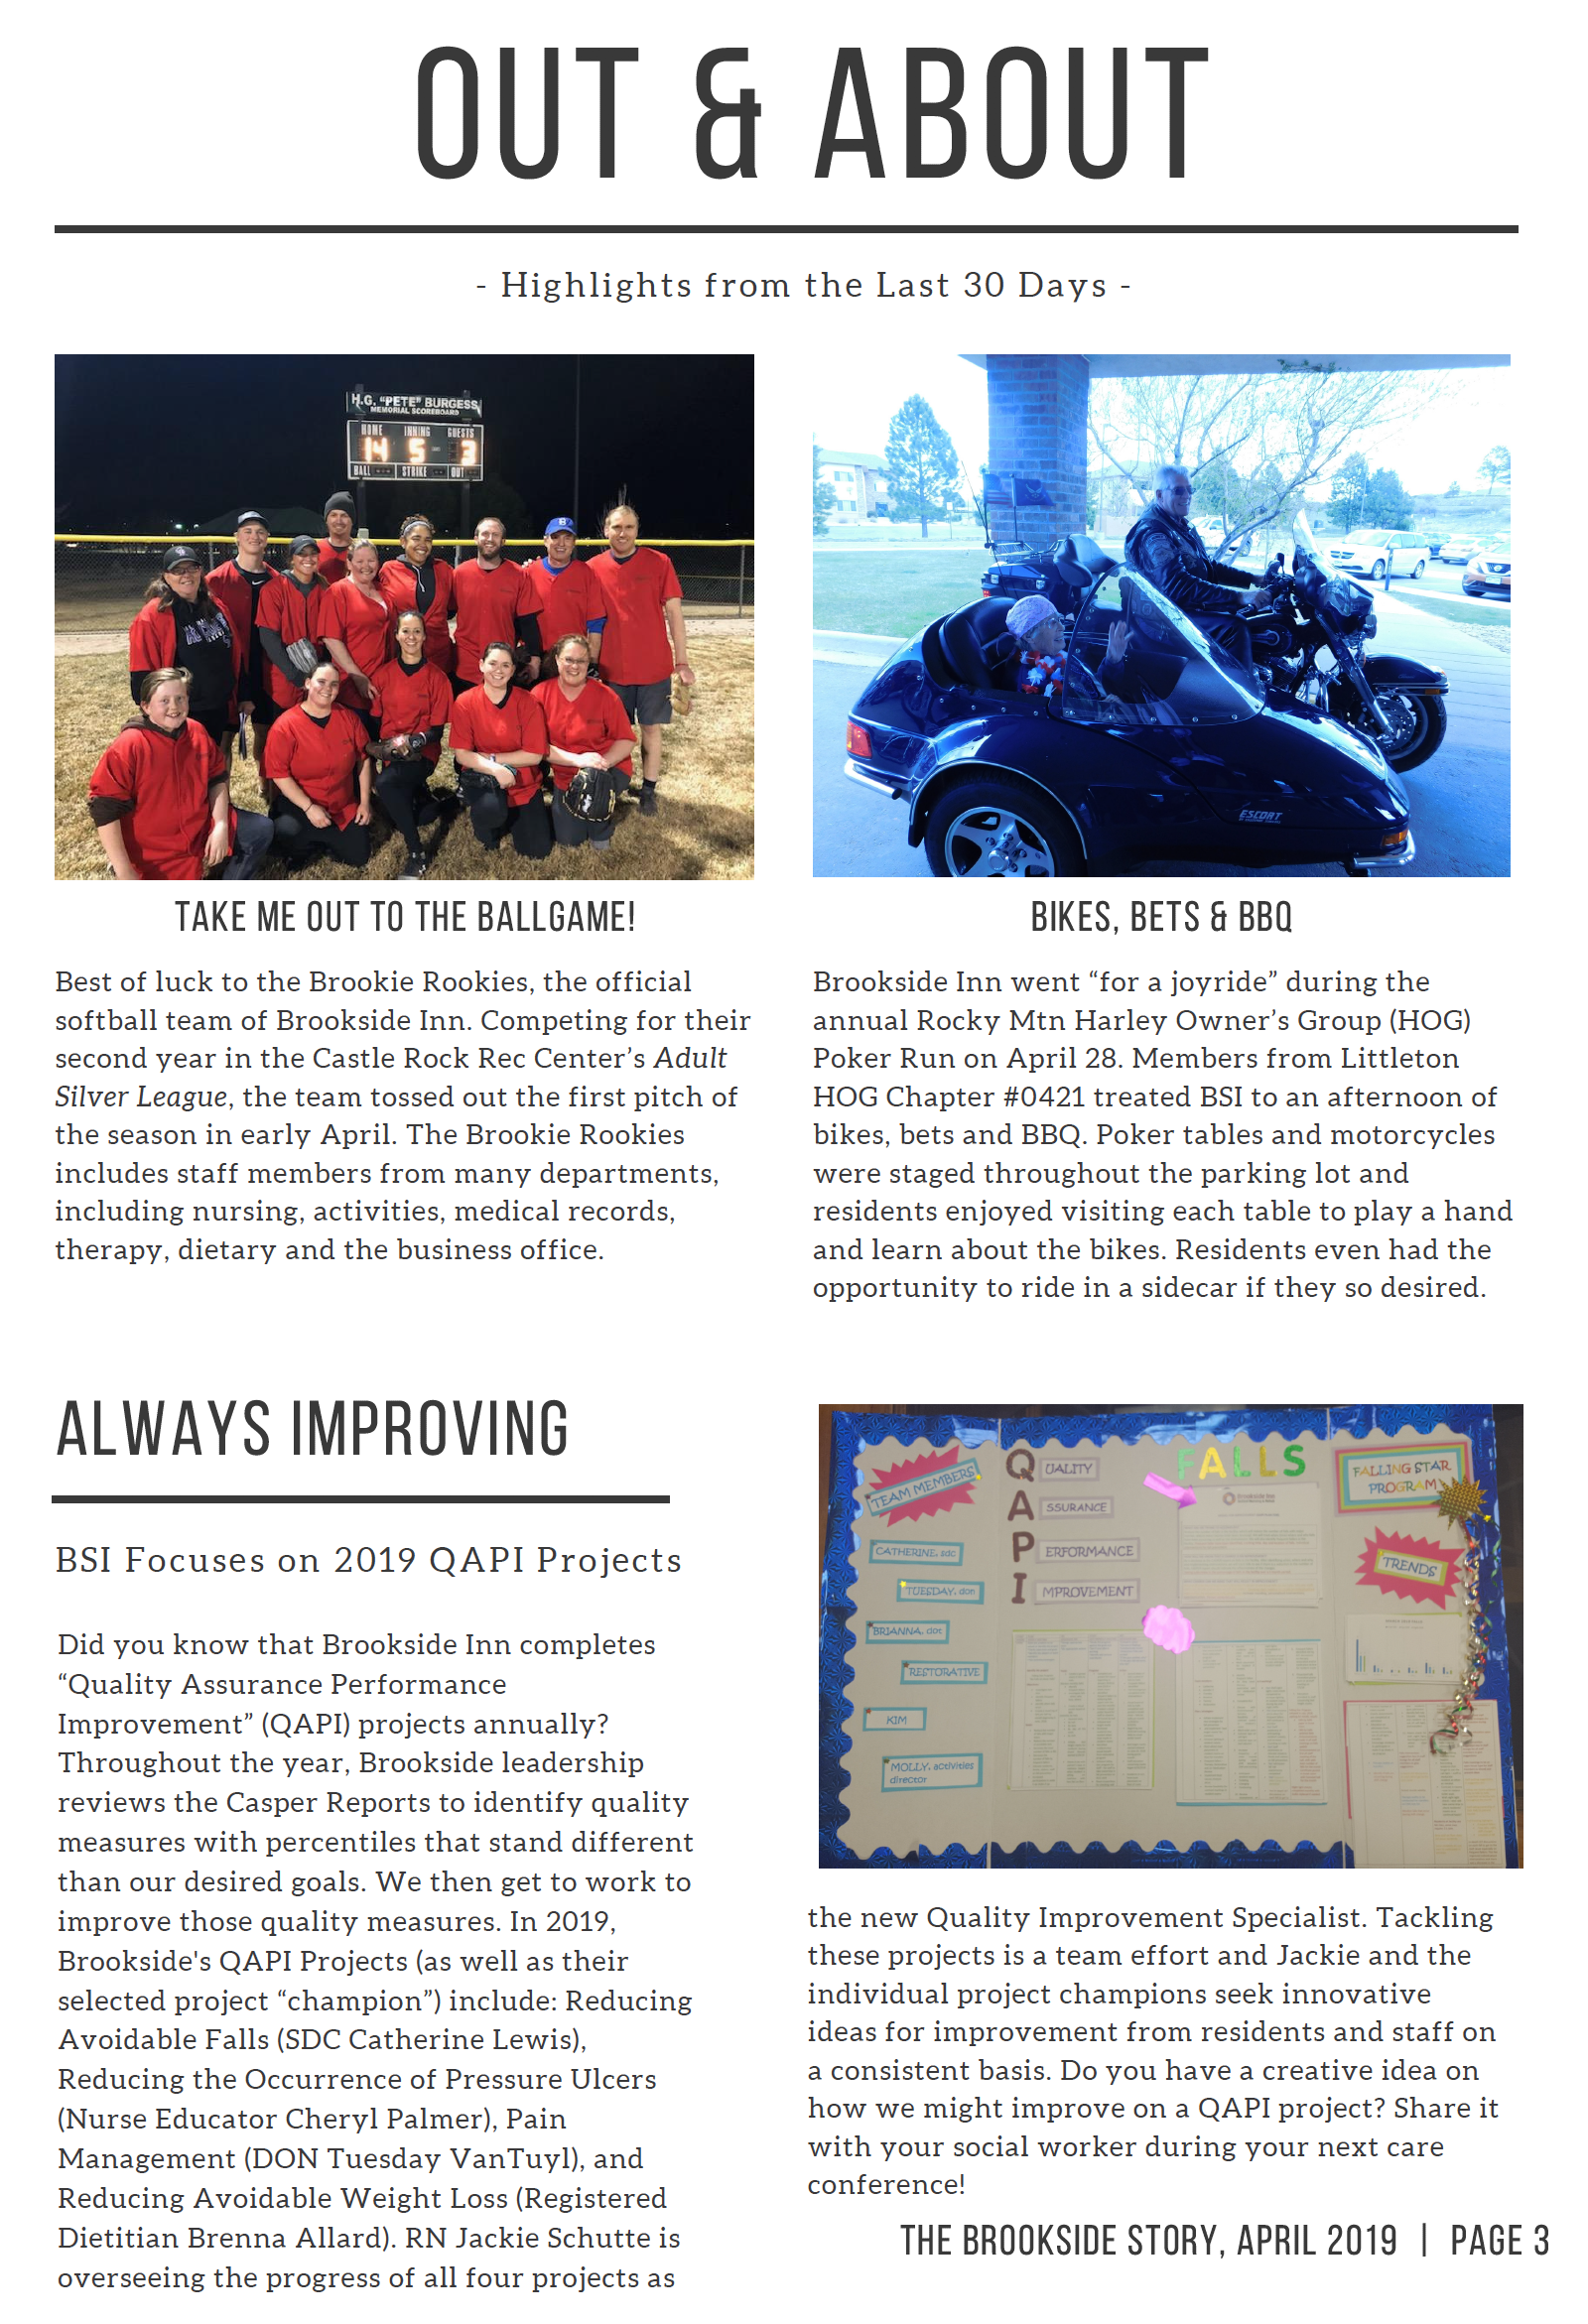 Page 3 describing the residents out and about at a ball game and on a bike ride.